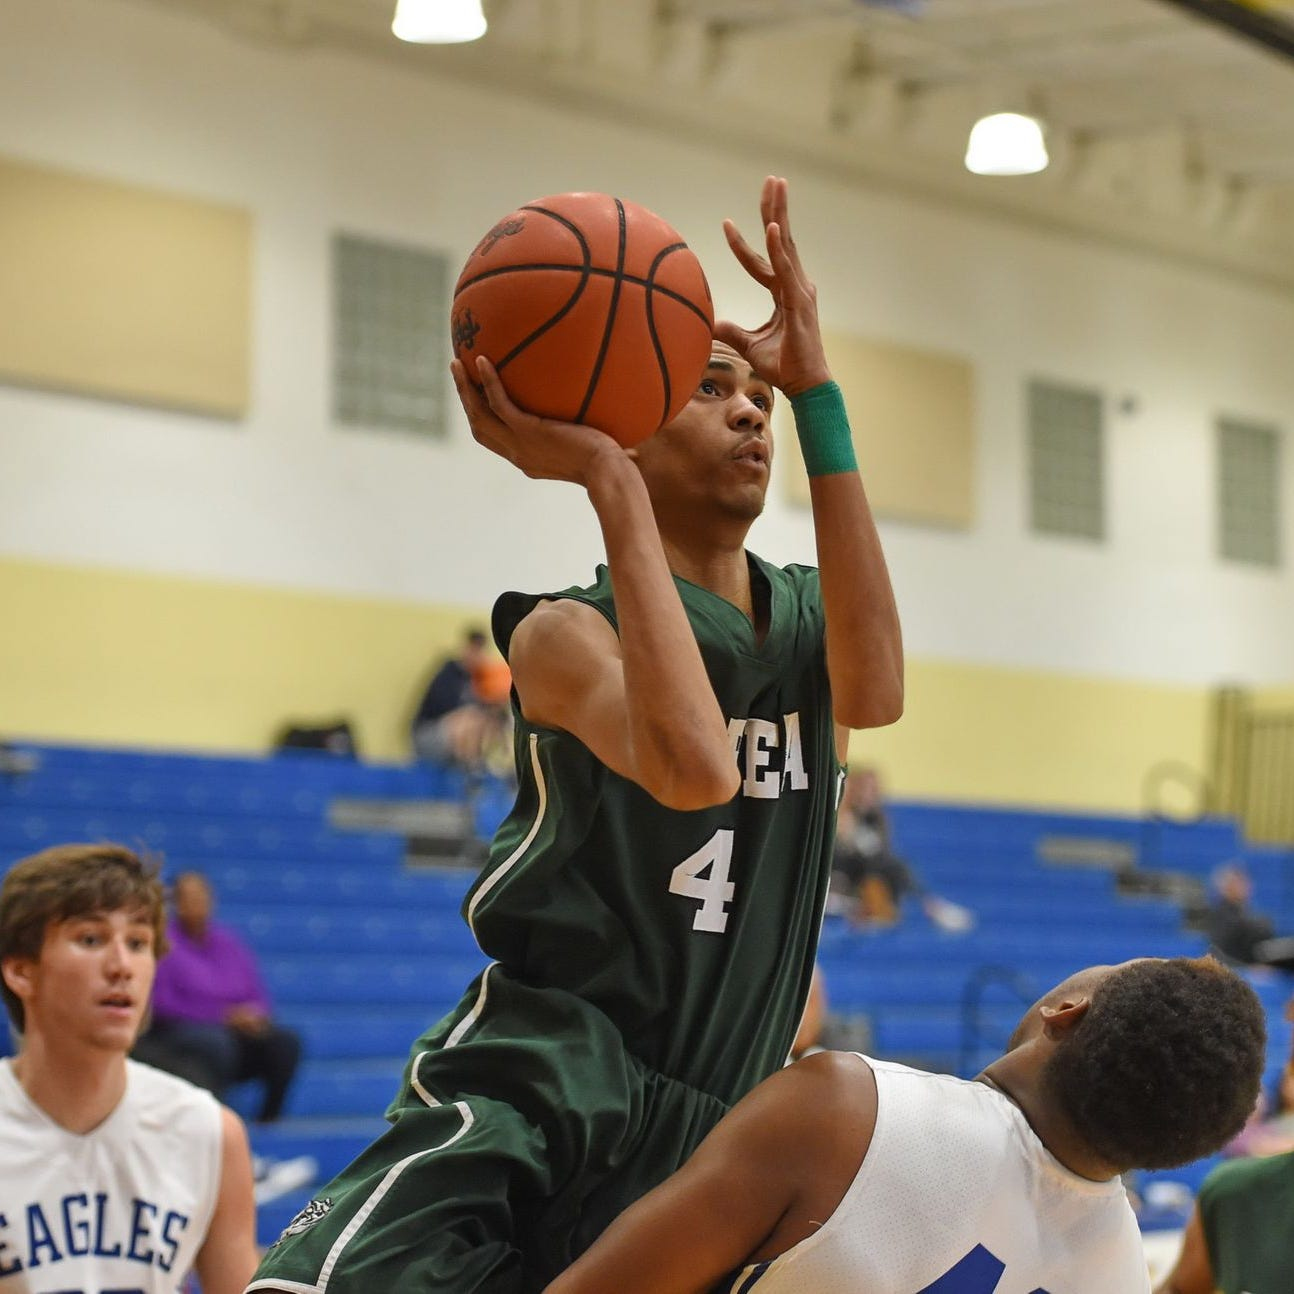 Friday's high school basketball results